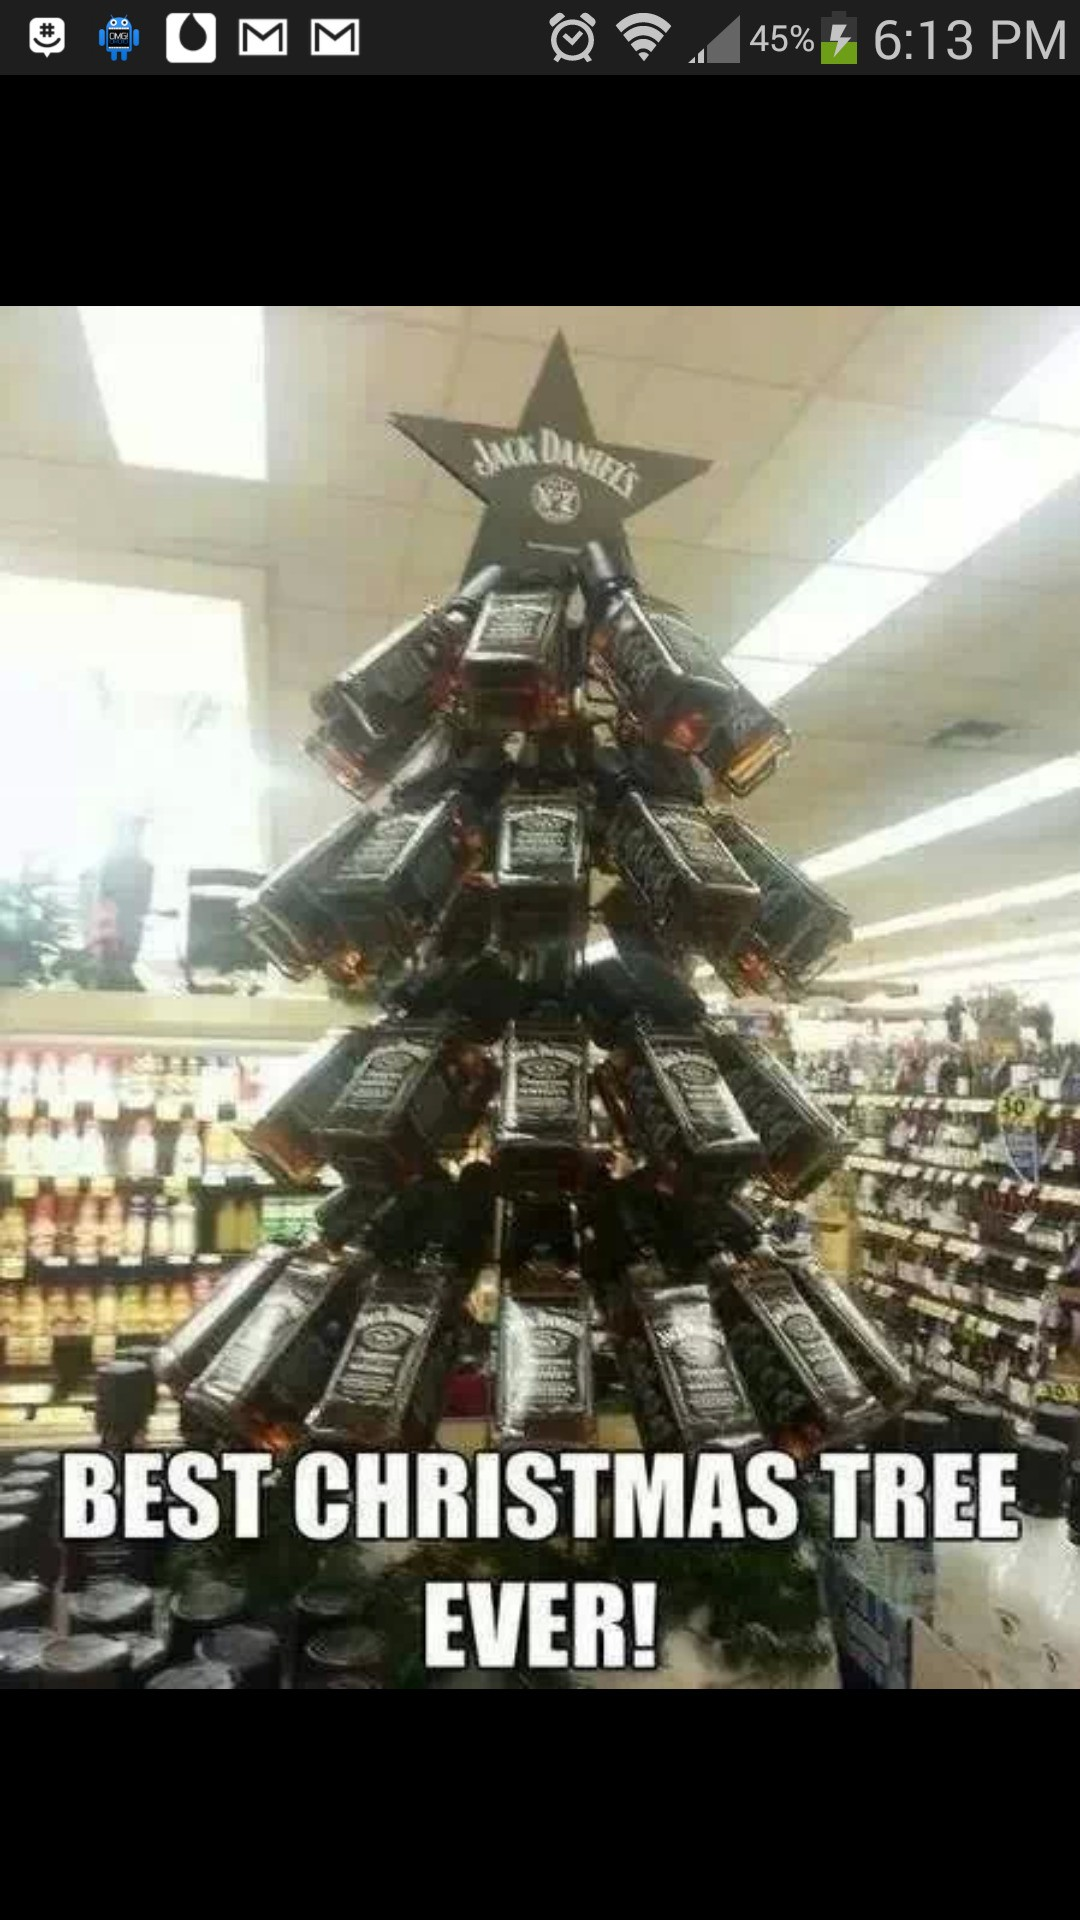 The best tree ever!!!!